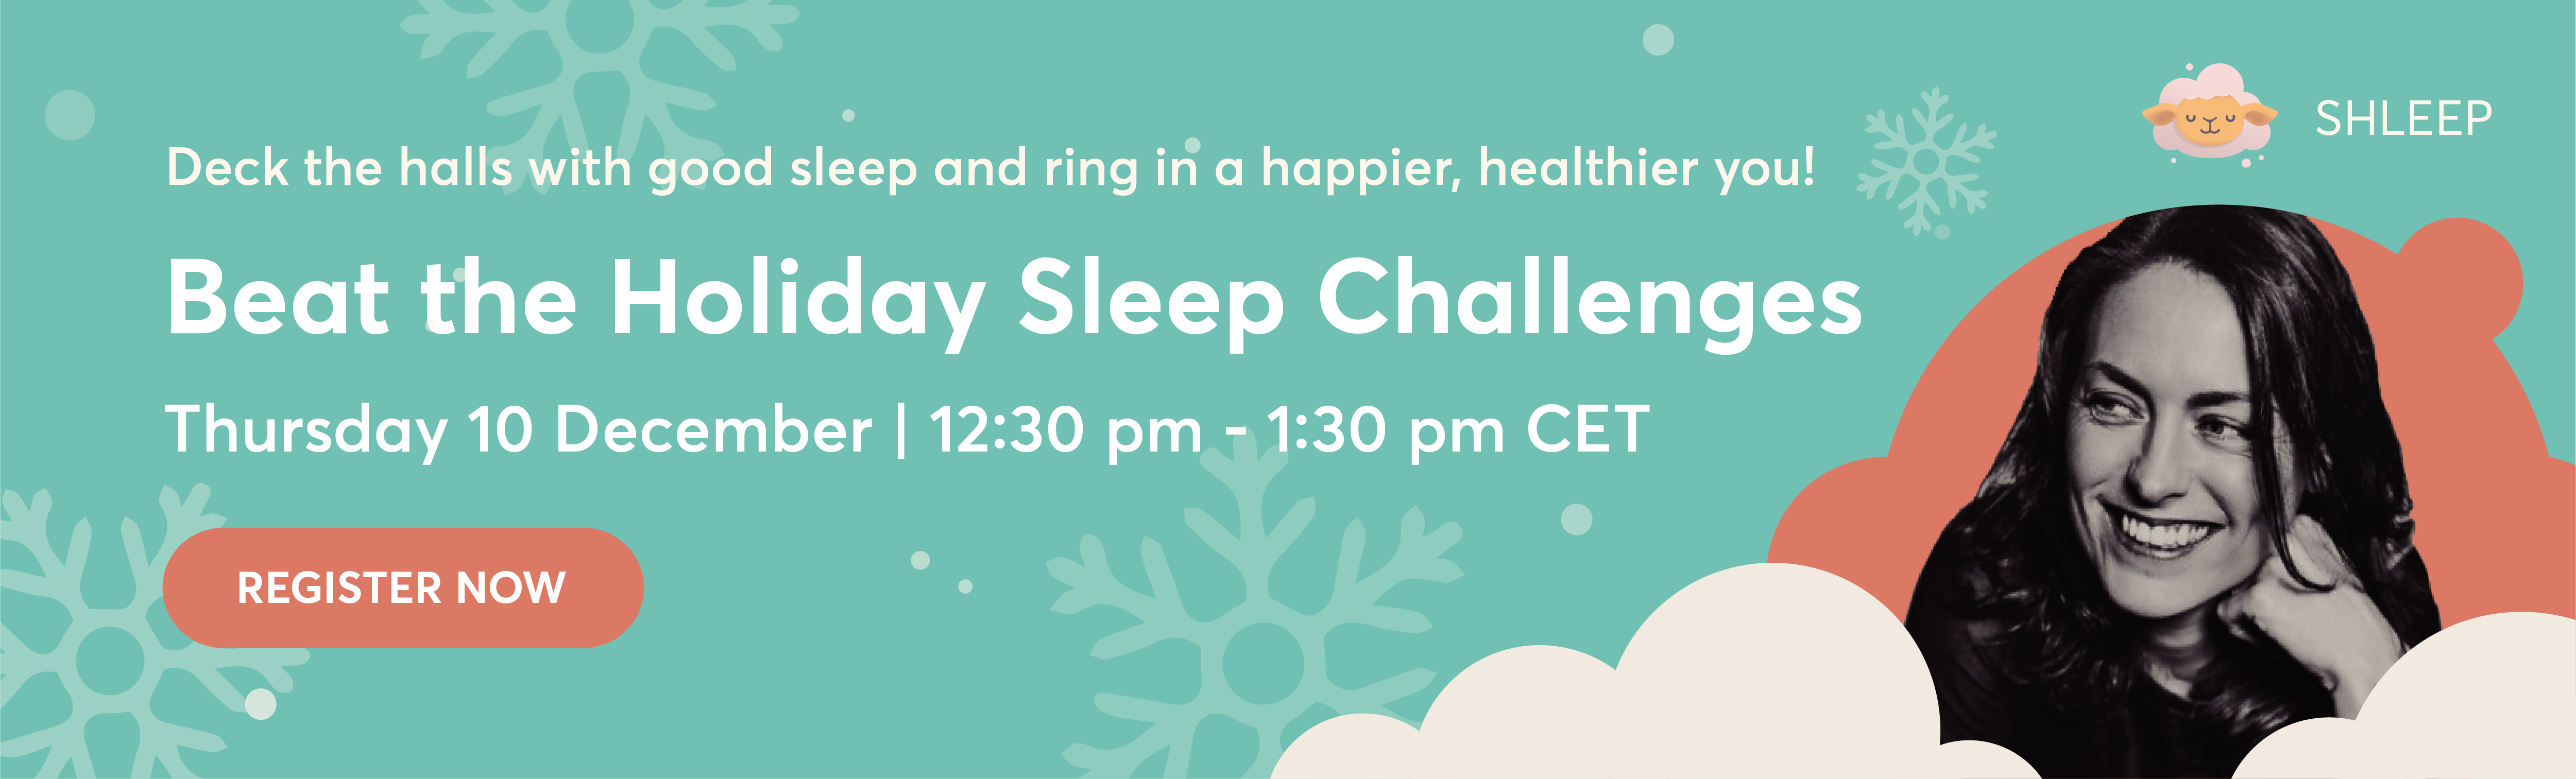 Register for Beat the Holiday Sleep Challenges